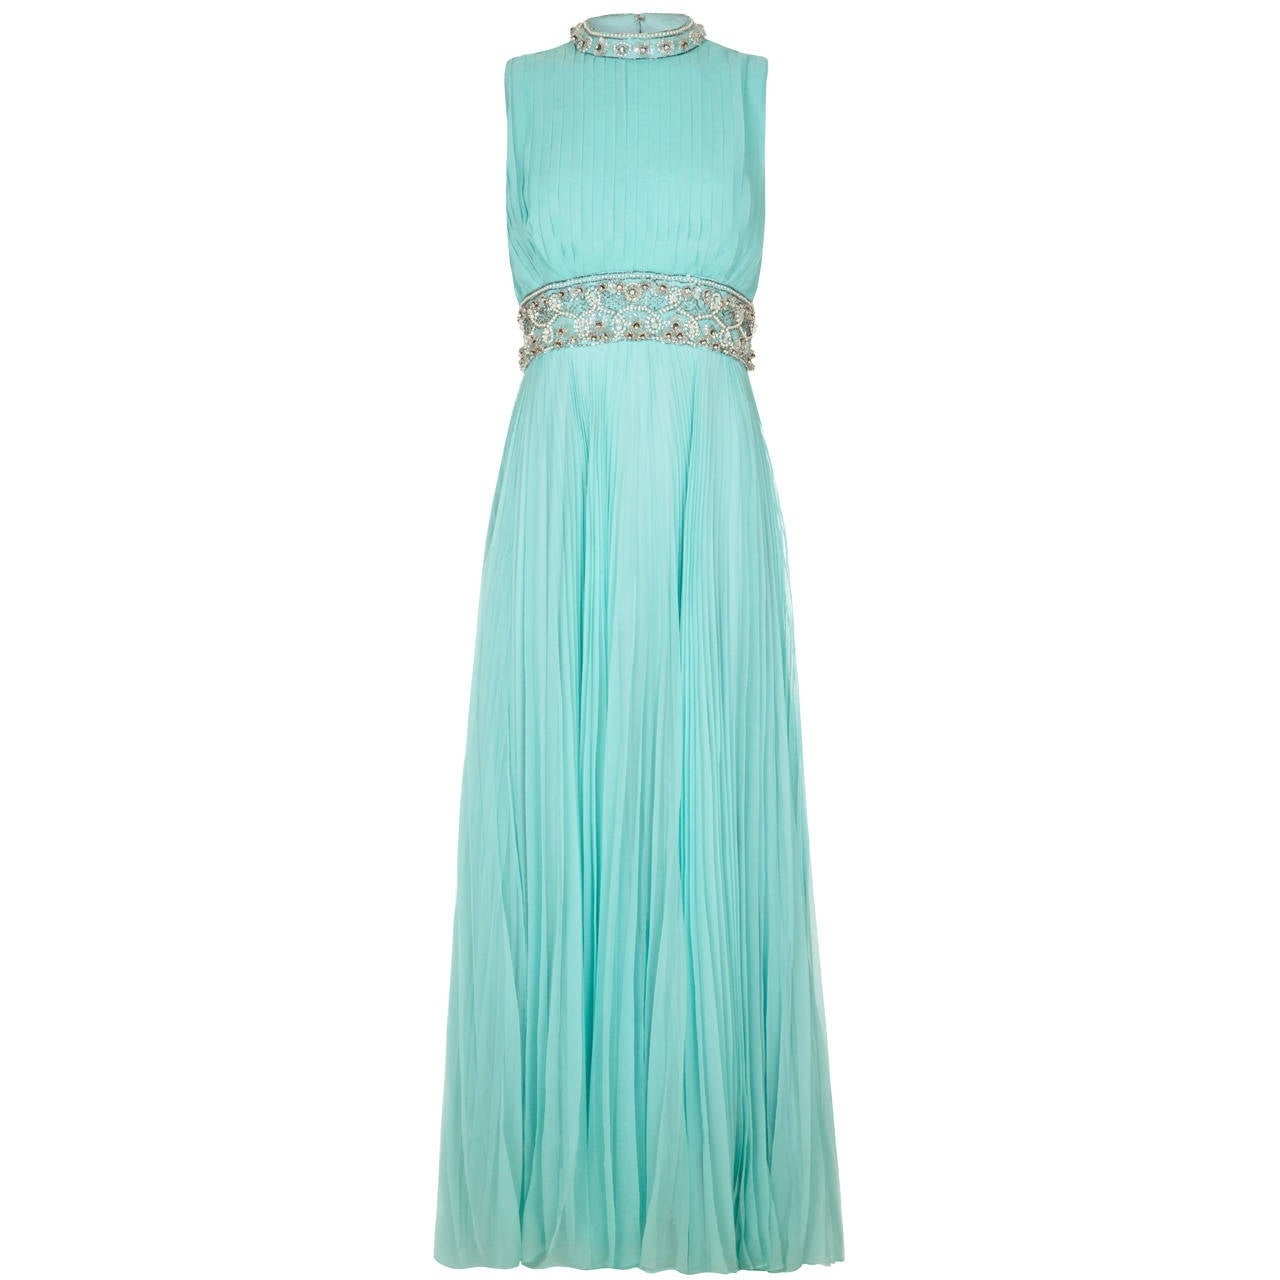 1960s Cerdley Turquoise Pleated Chiffon Beaded Gown 1